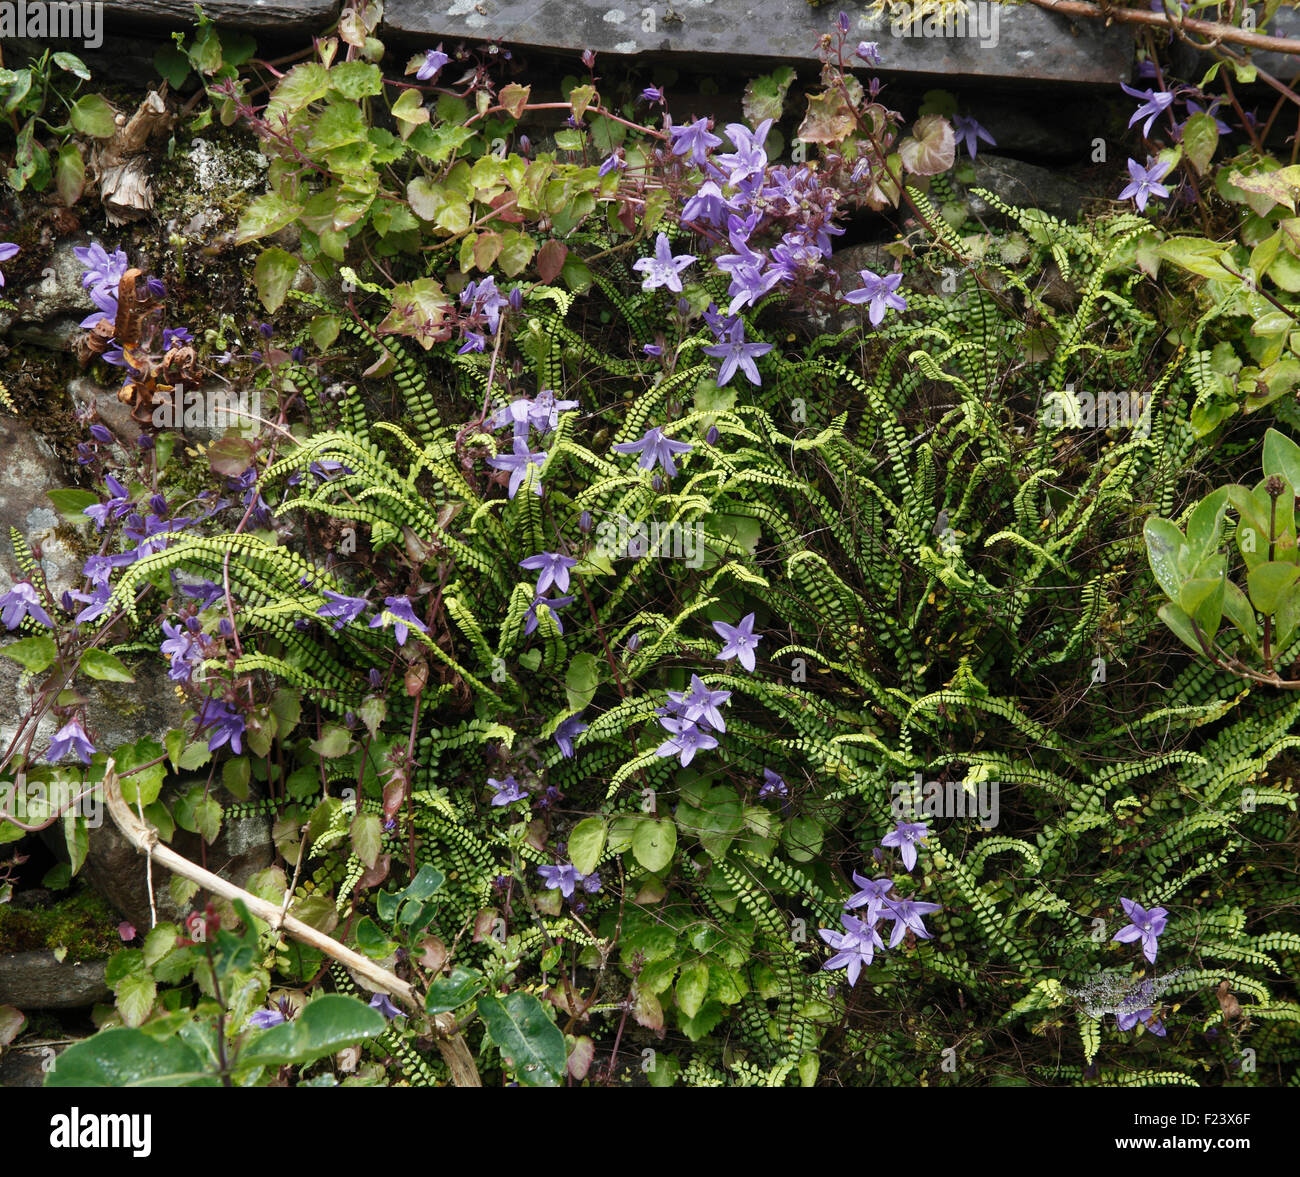 Campanula poscharskyana spreading amongst ferns - Stock Image